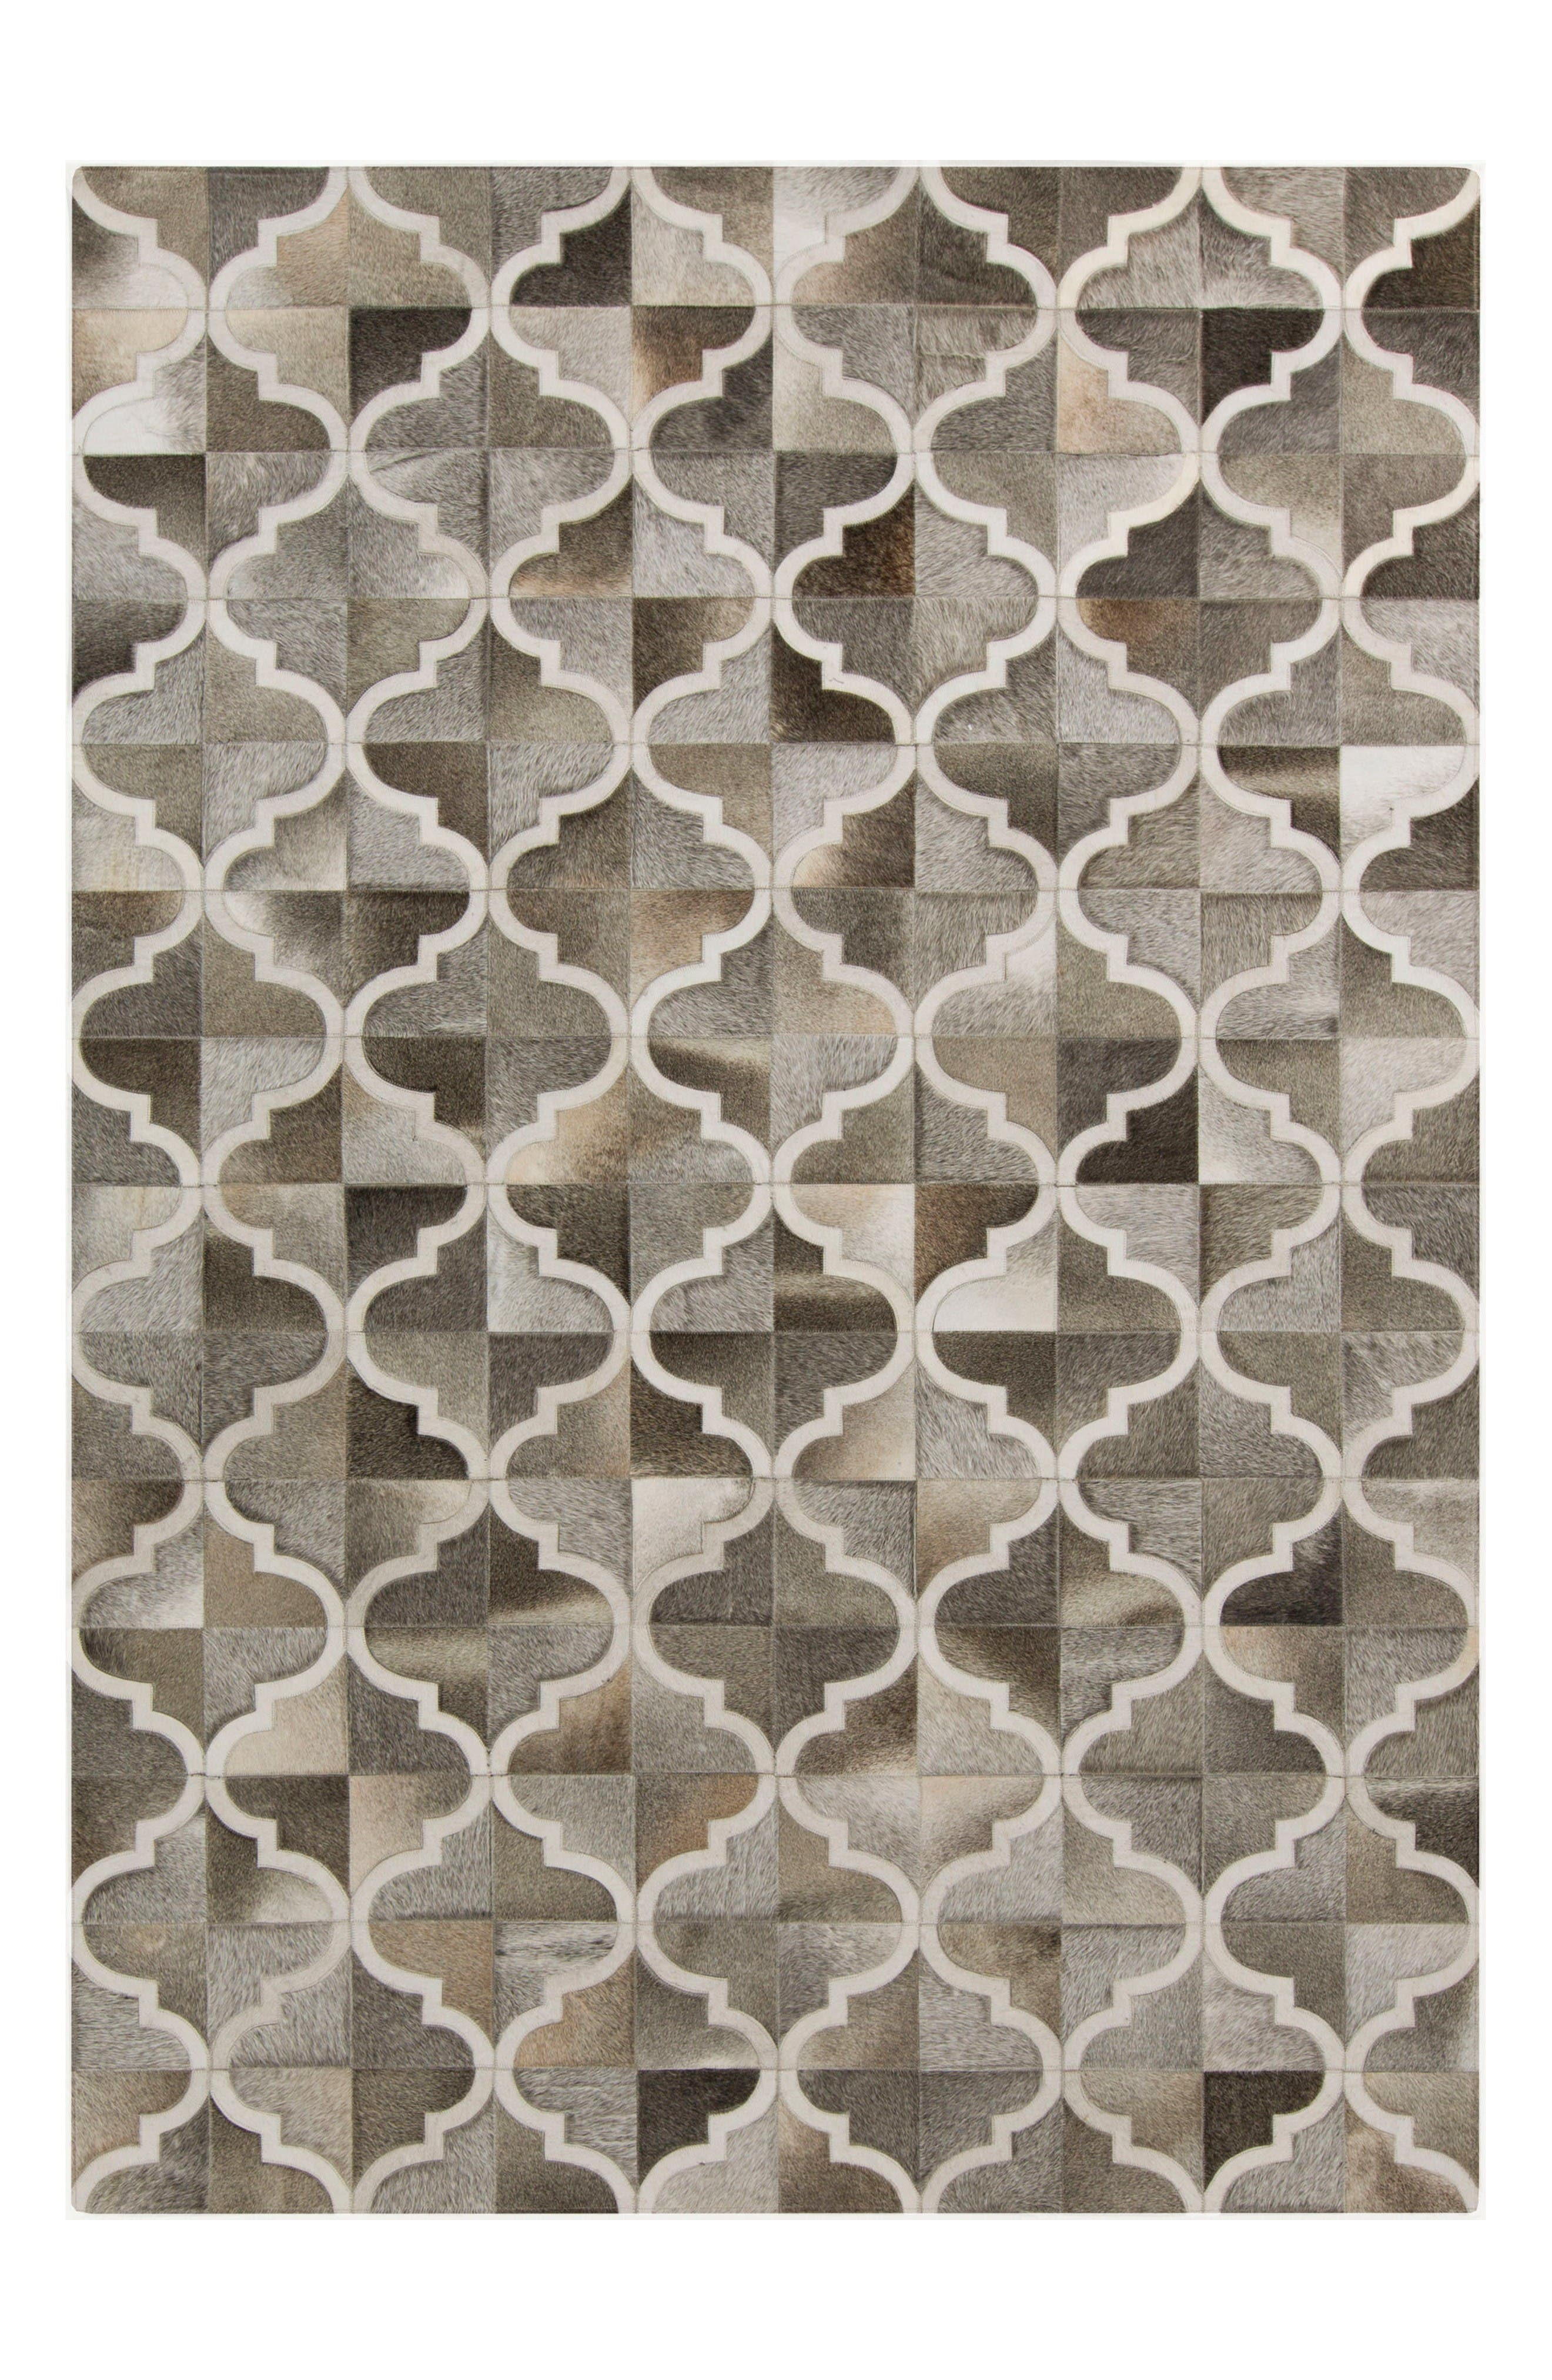 Main Image - Surya Home Outback Diamond Hand Stitched Calf Hair Rug